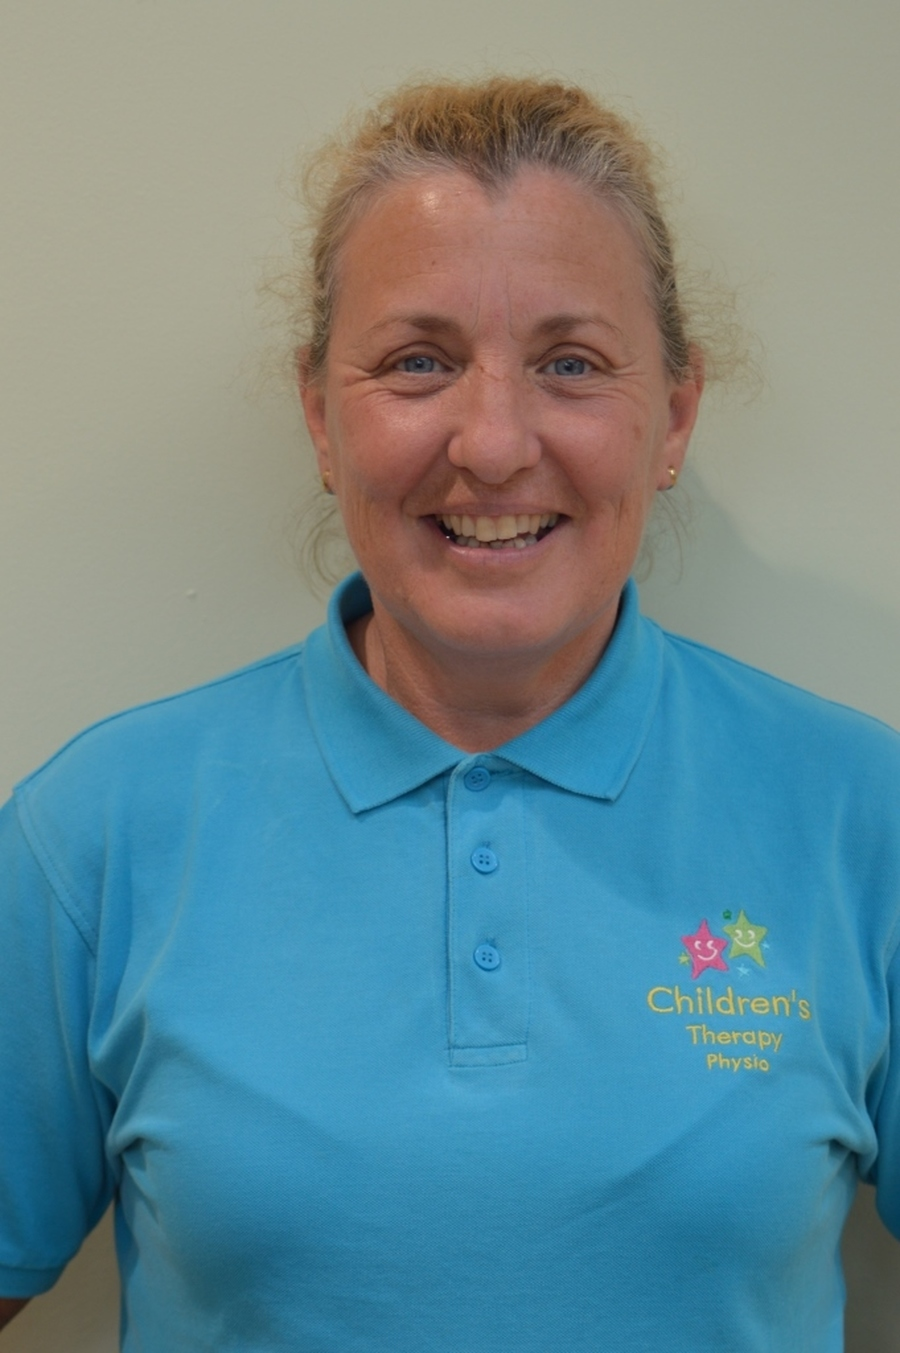 Suzanne Carter - Physio